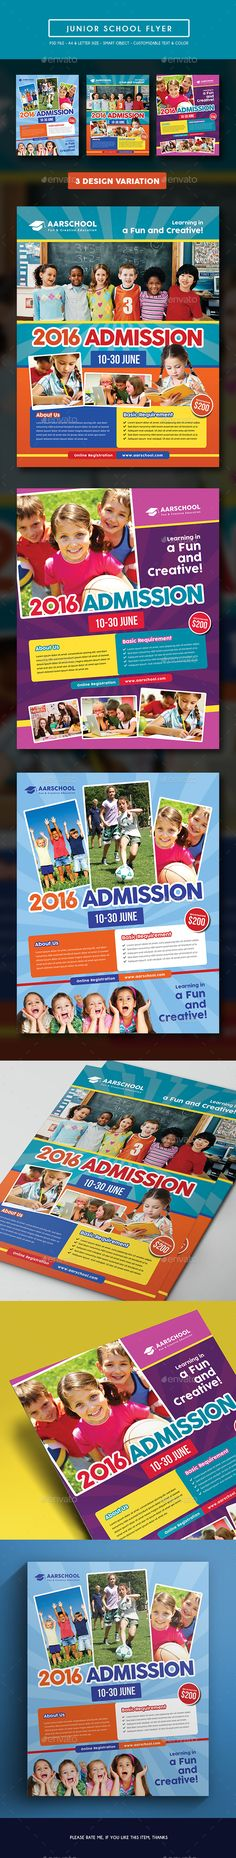 Junior School Flyer — Photoshop PSD #pamphlet #kid • Available here → https://graphicriver.net/item/junior-school-flyer/15249605?ref=pxcr